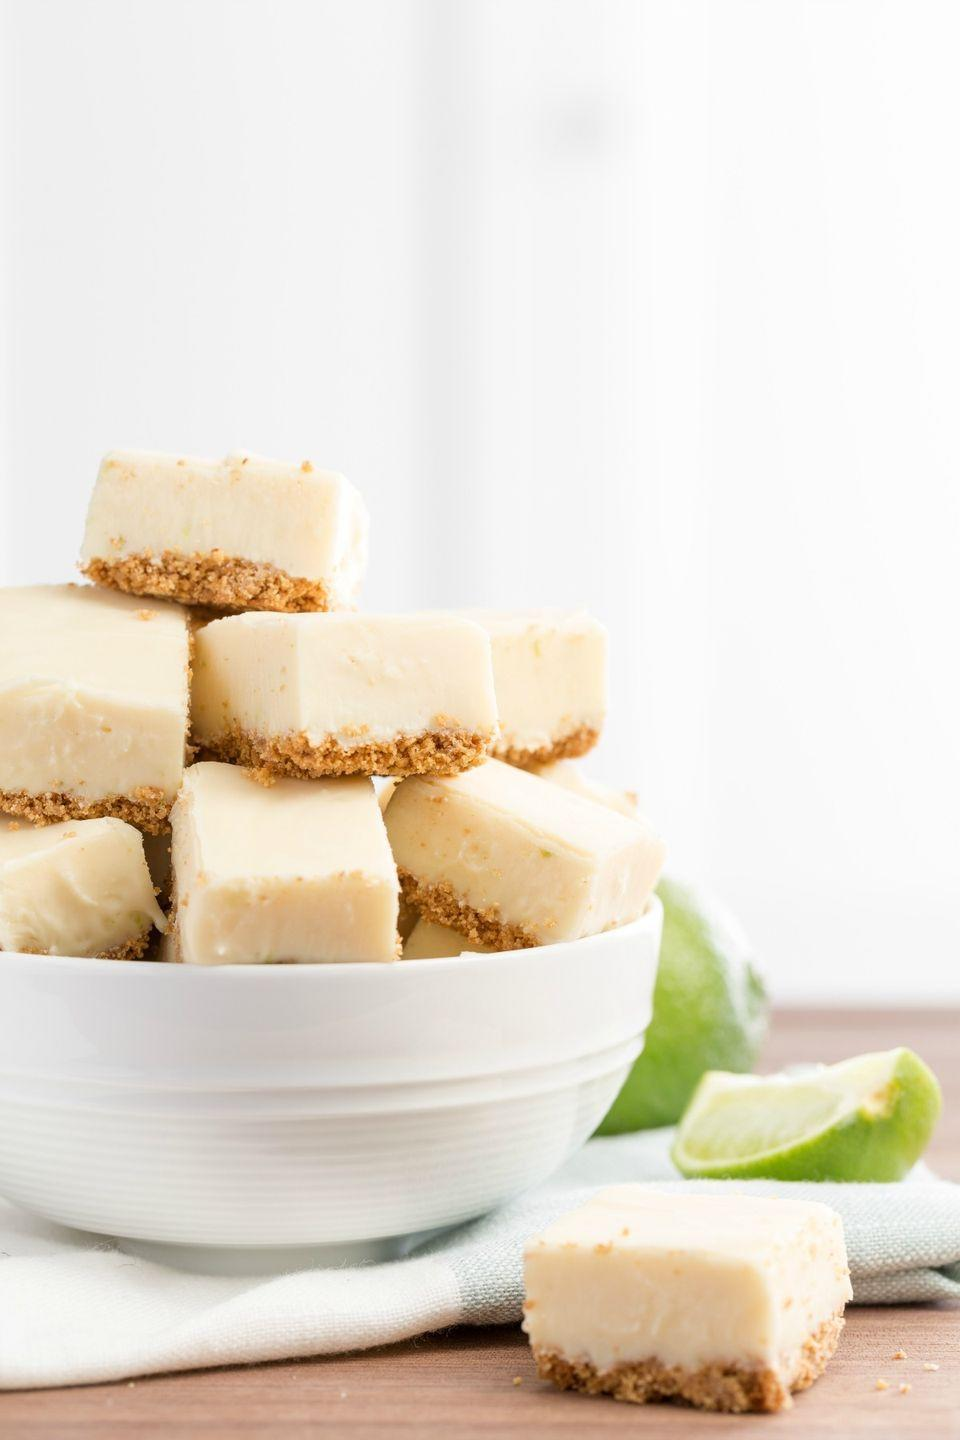 """<p>Who says fudge is just for winter?</p><p>Get the recipe from <a href=""""https://www.delish.com/cooking/recipe-ideas/recipes/a45749/key-lime-pie-fudge/"""" rel=""""nofollow noopener"""" target=""""_blank"""" data-ylk=""""slk:Delish"""" class=""""link rapid-noclick-resp"""">Delish</a>.</p>"""